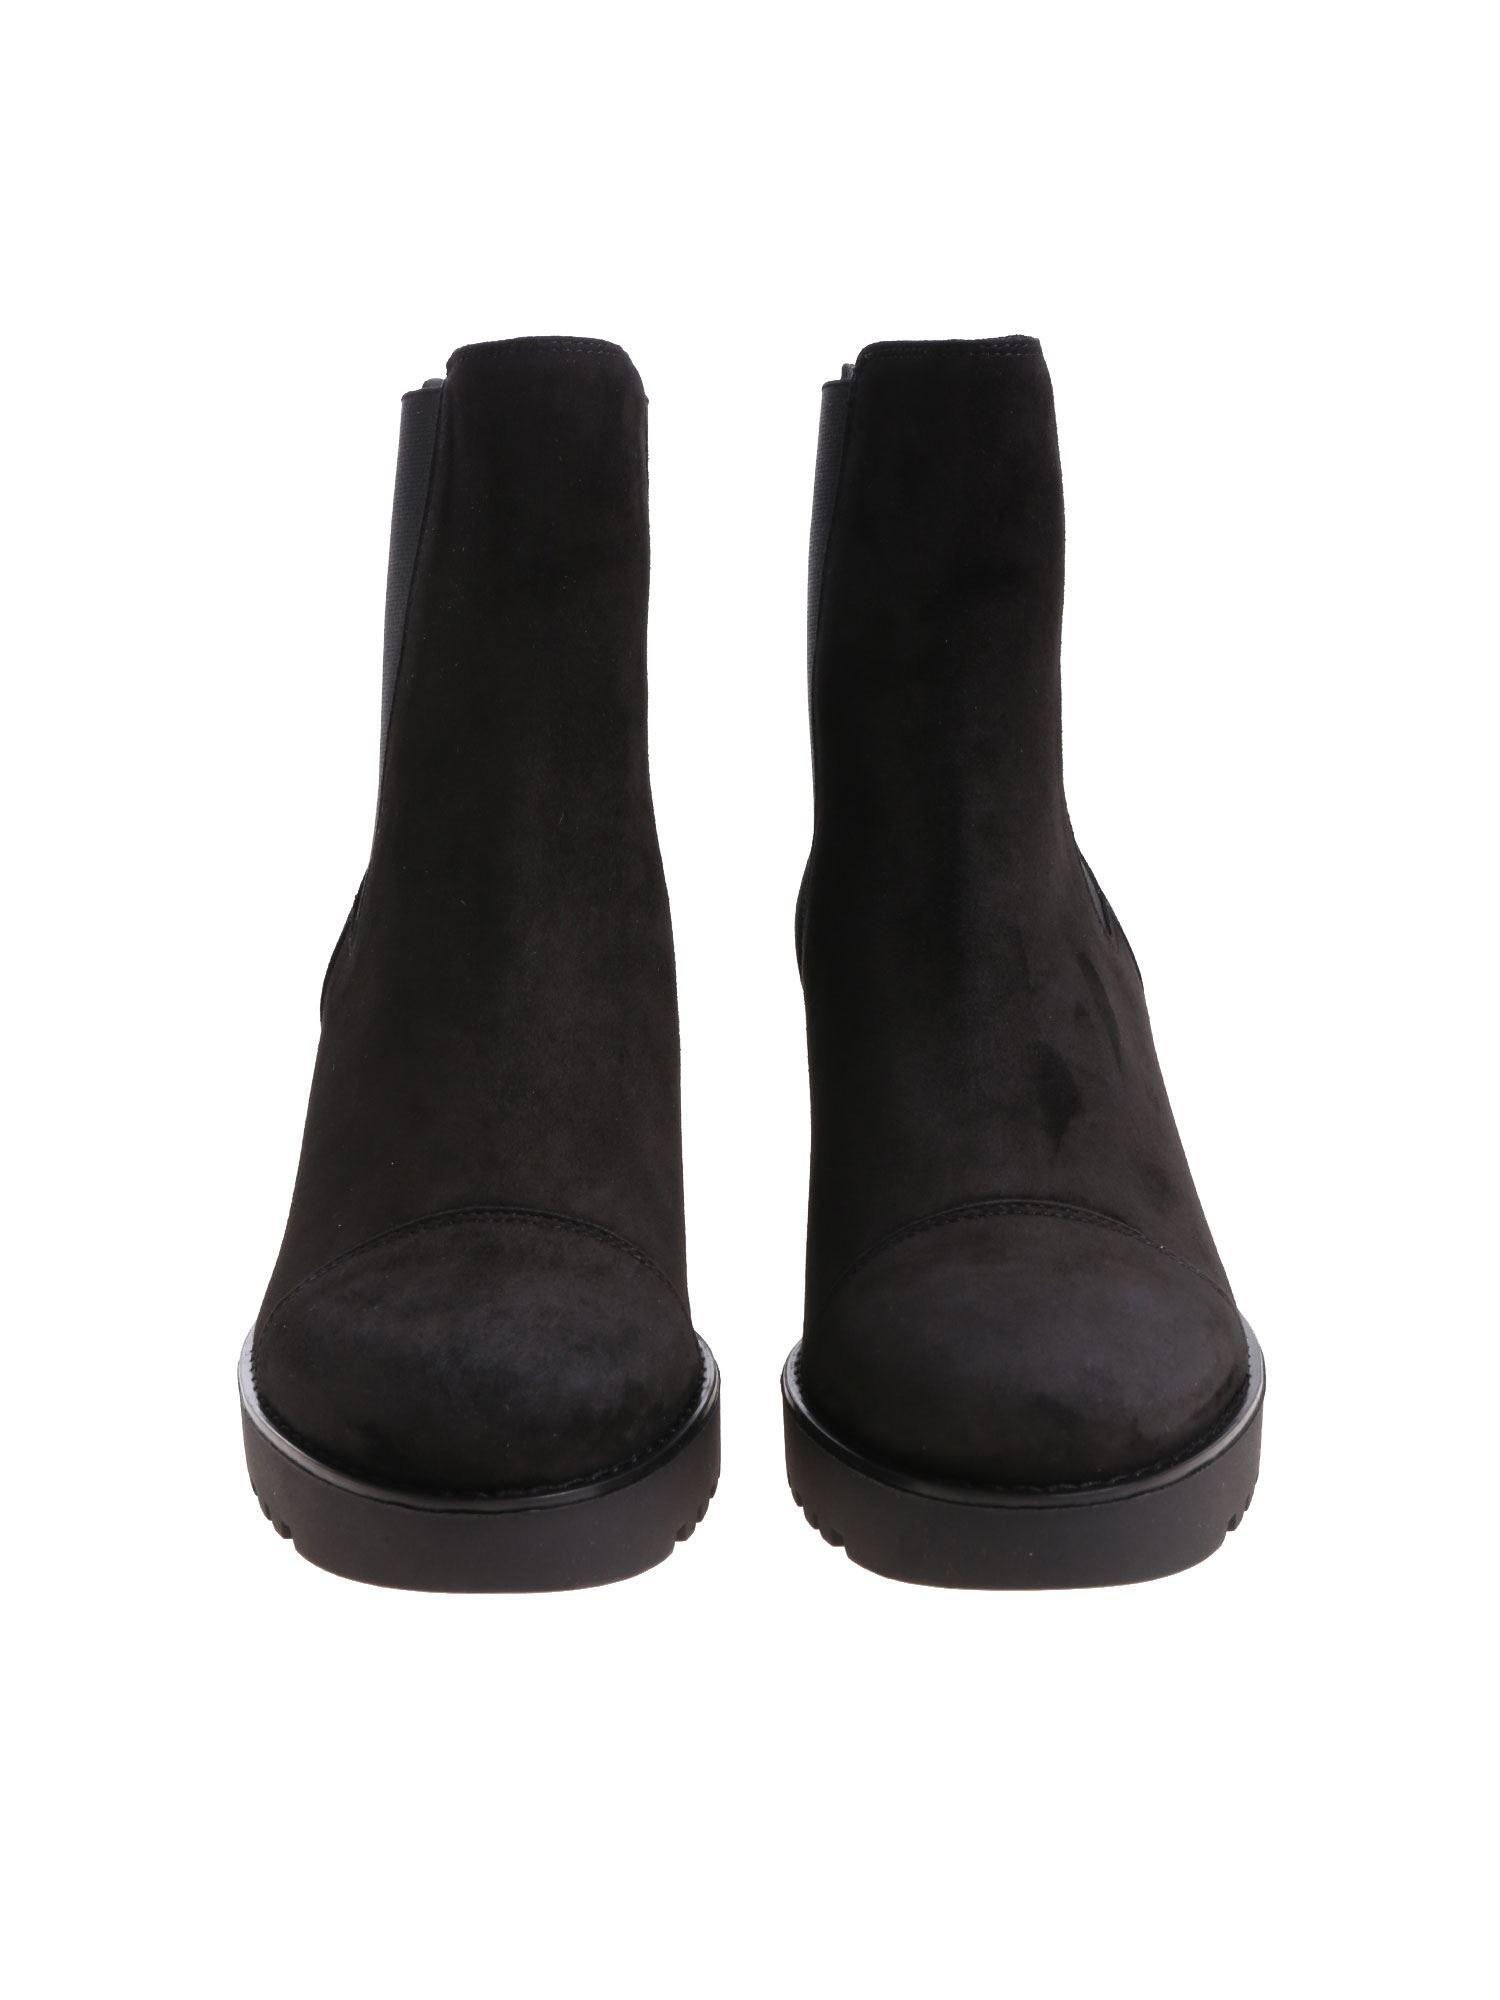 c51310aeff Hogan H277 Black Chelsea Ankle Boots in Black - Lyst